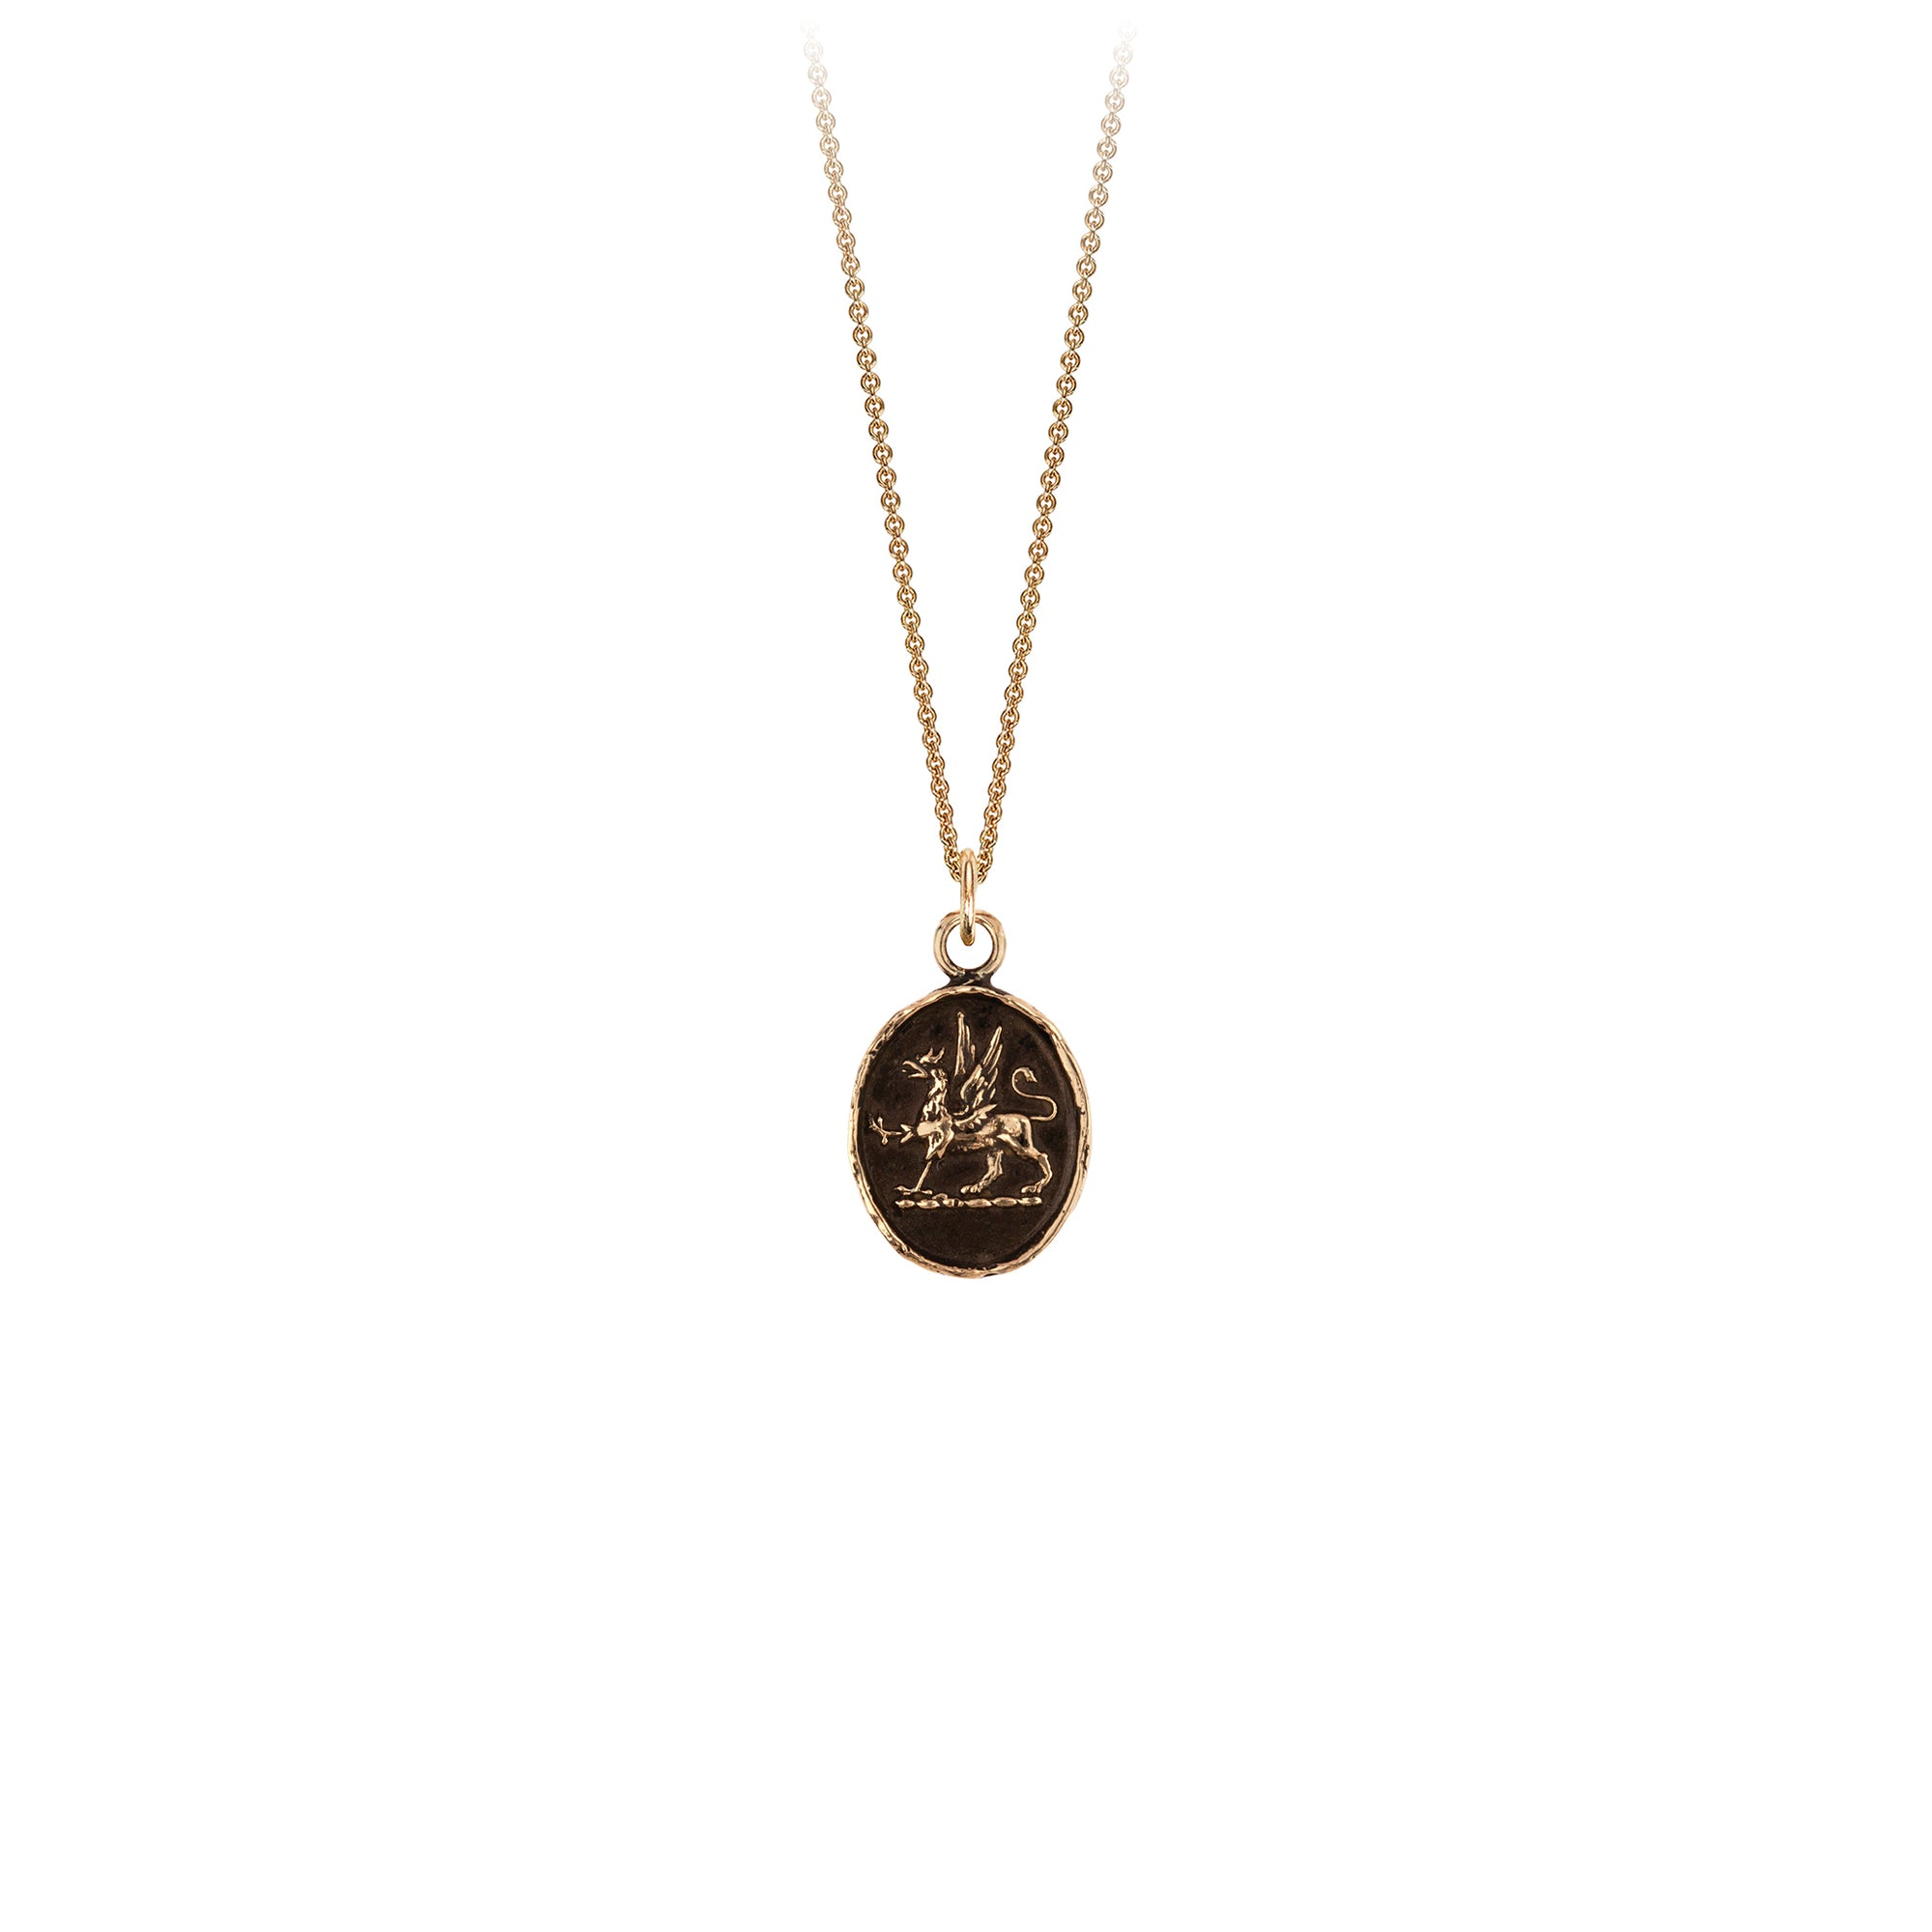 Pyrrha 14K Gold Spirit Talisman Necklace